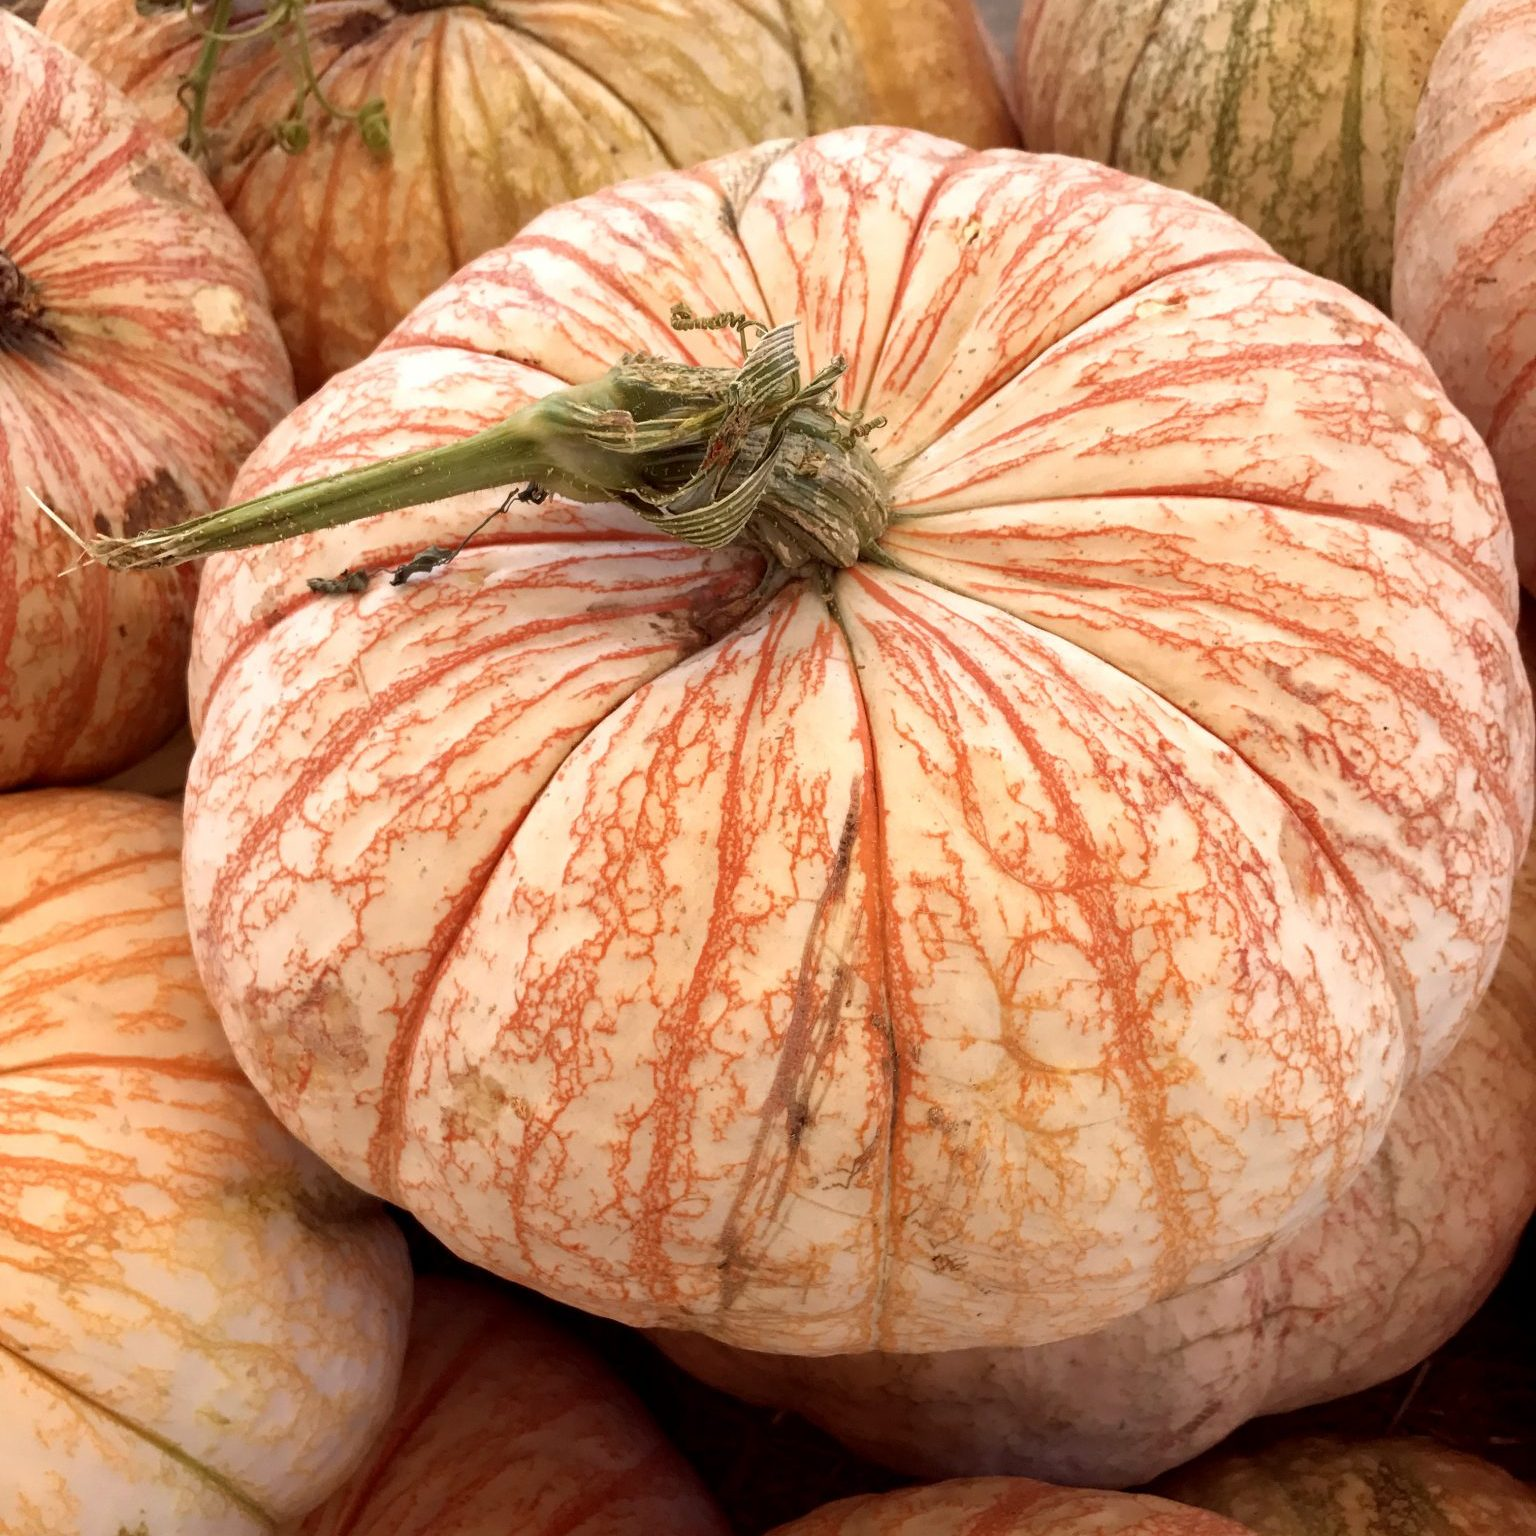 If you're looking for unique styles of pumpkins this Halloween, head to North Haven Garden.